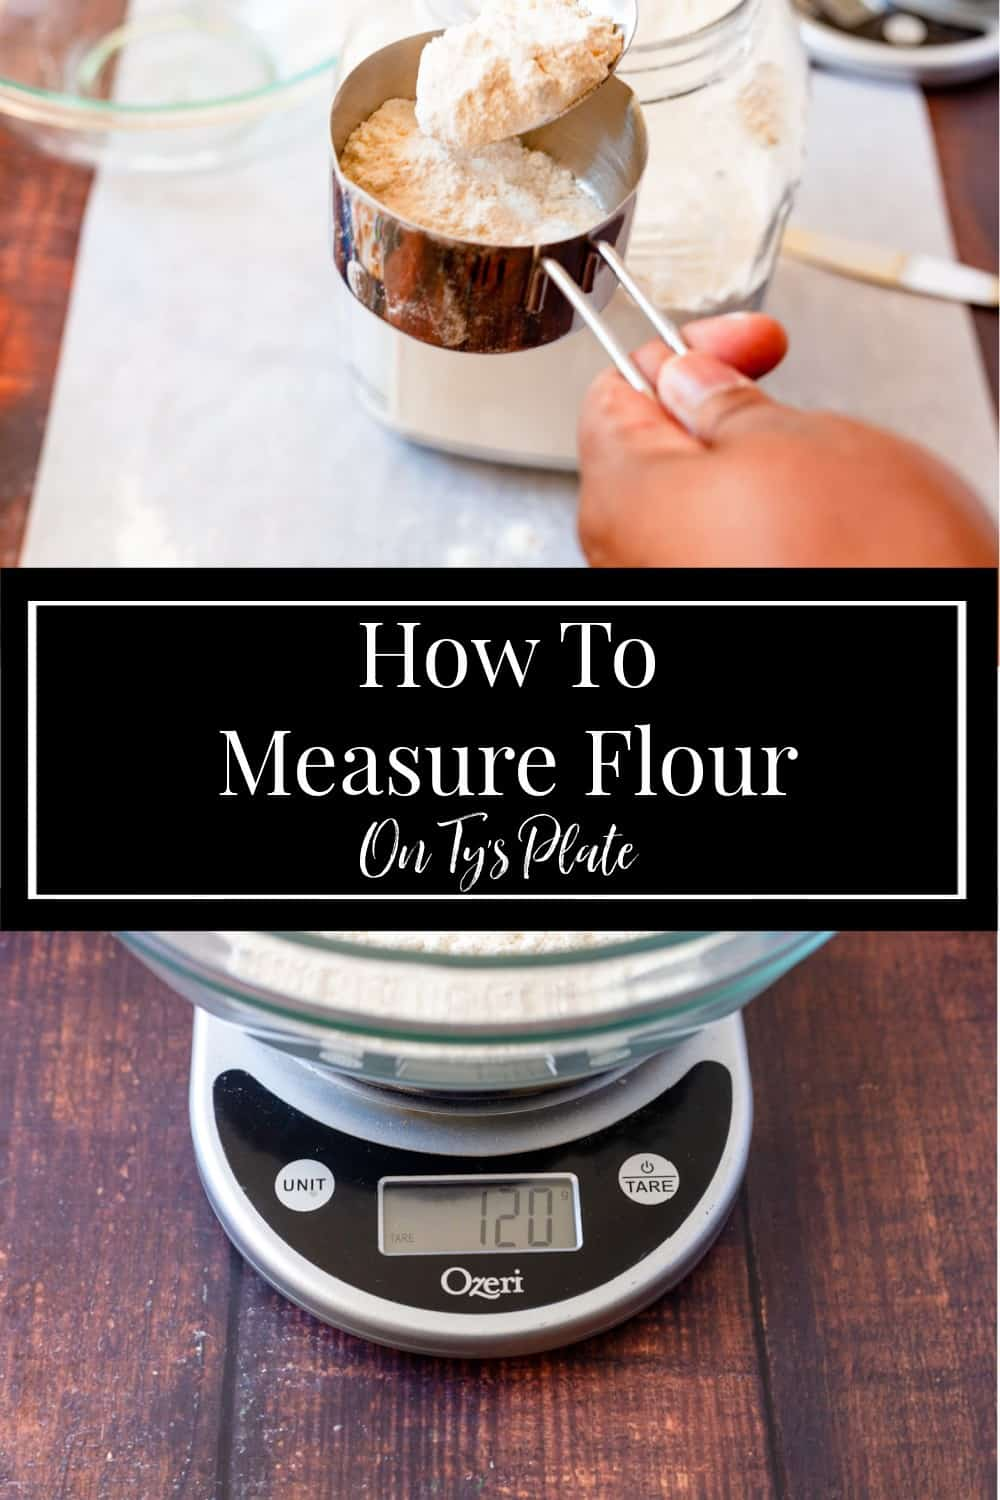 How To Measure Flour Accurately for Baking